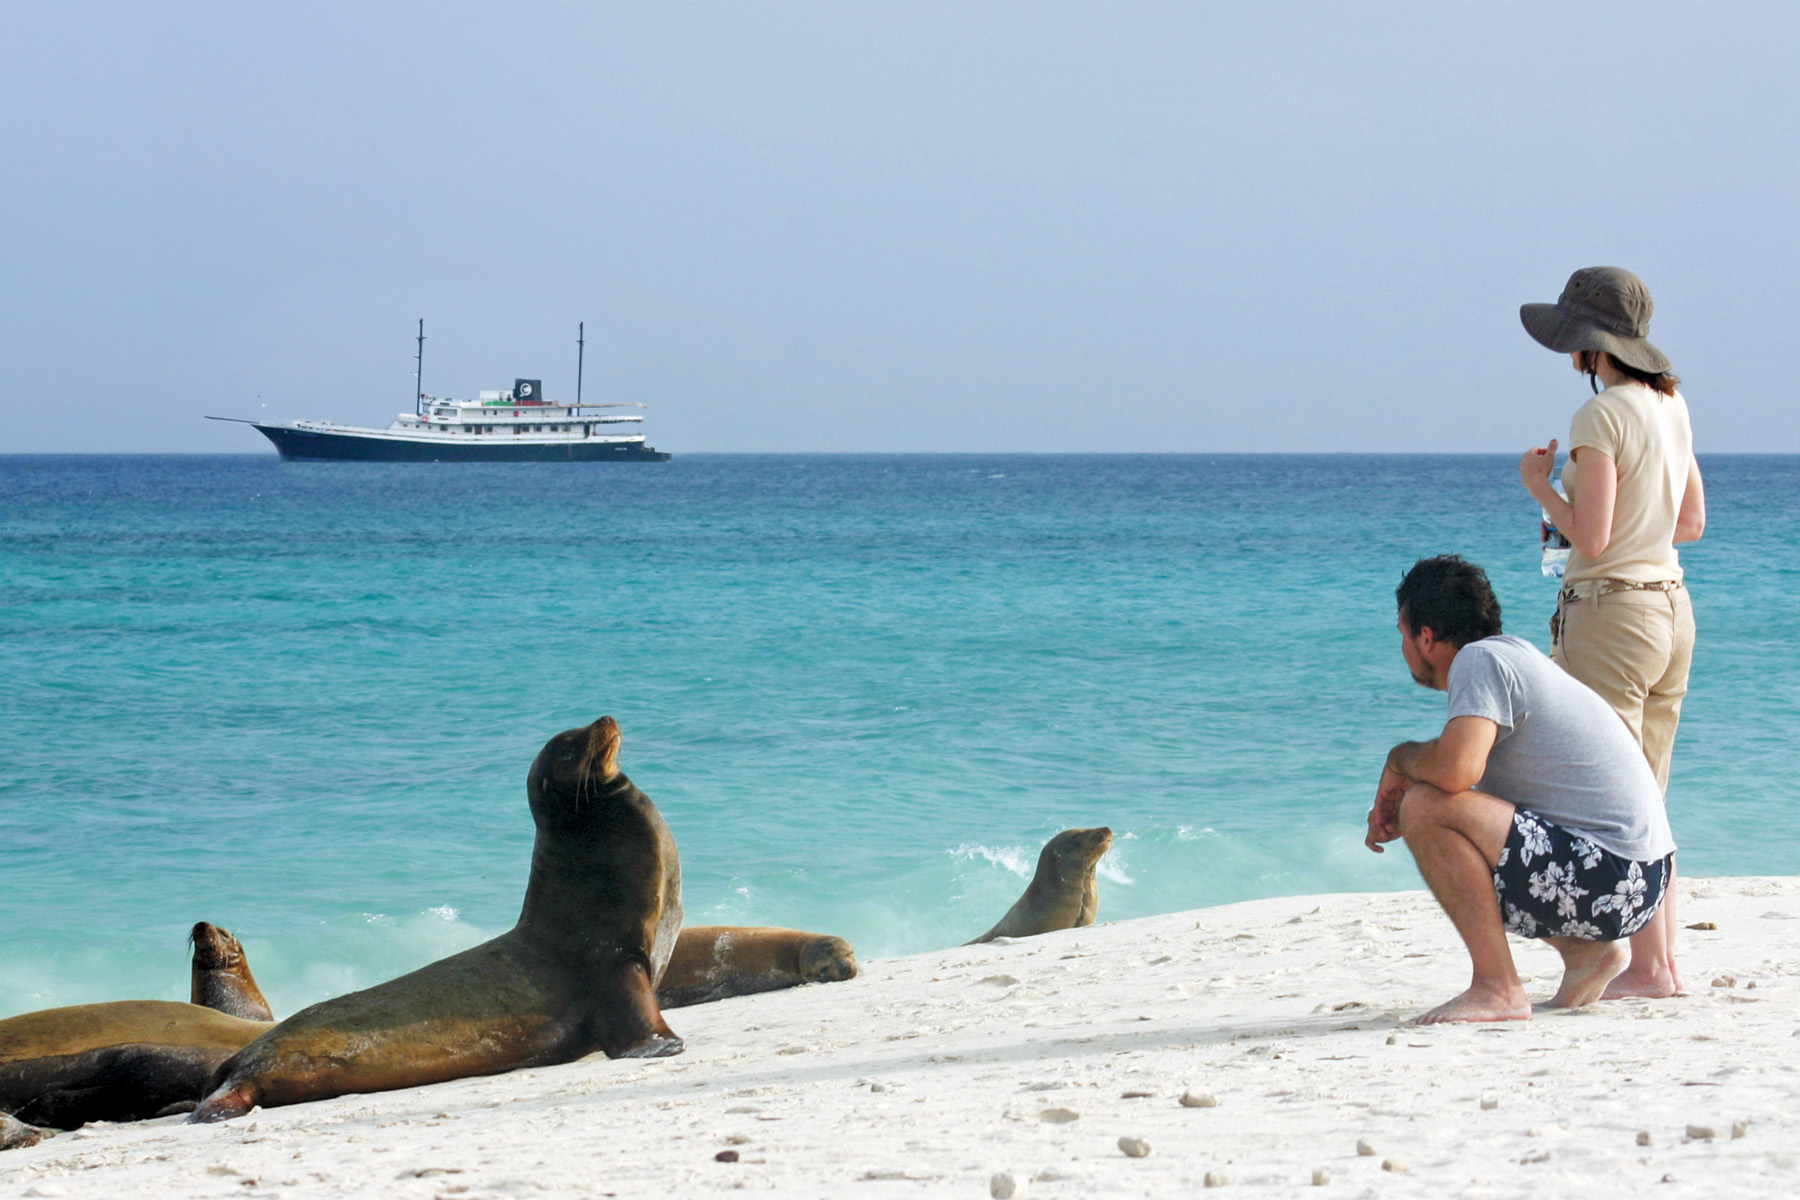 Wildlife Encounters in the Galapagos Islands